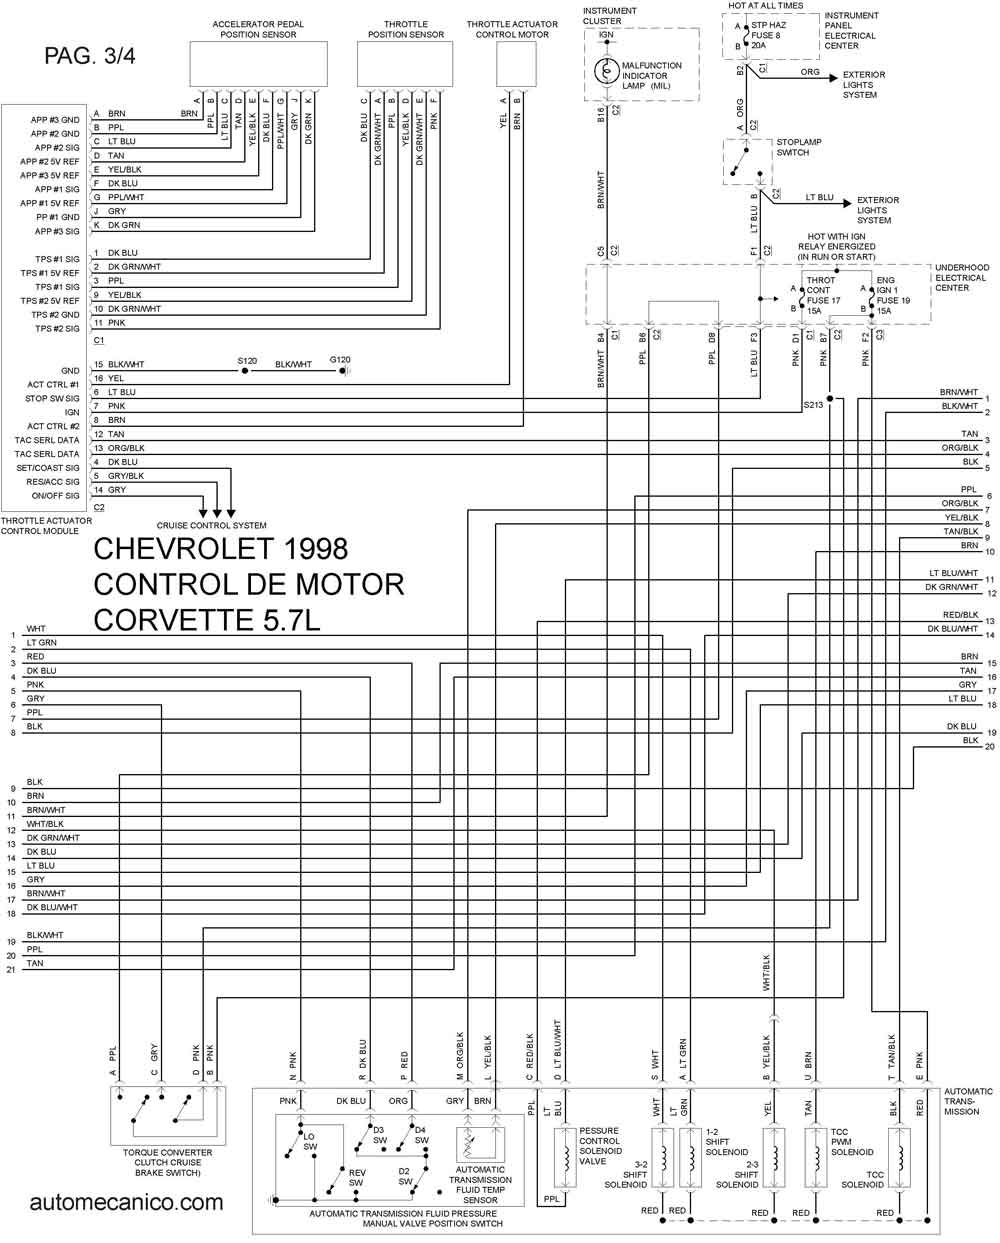 Dodge Ram Fuse Box Wiring Diagram Shrutiradio. Dodge. Auto